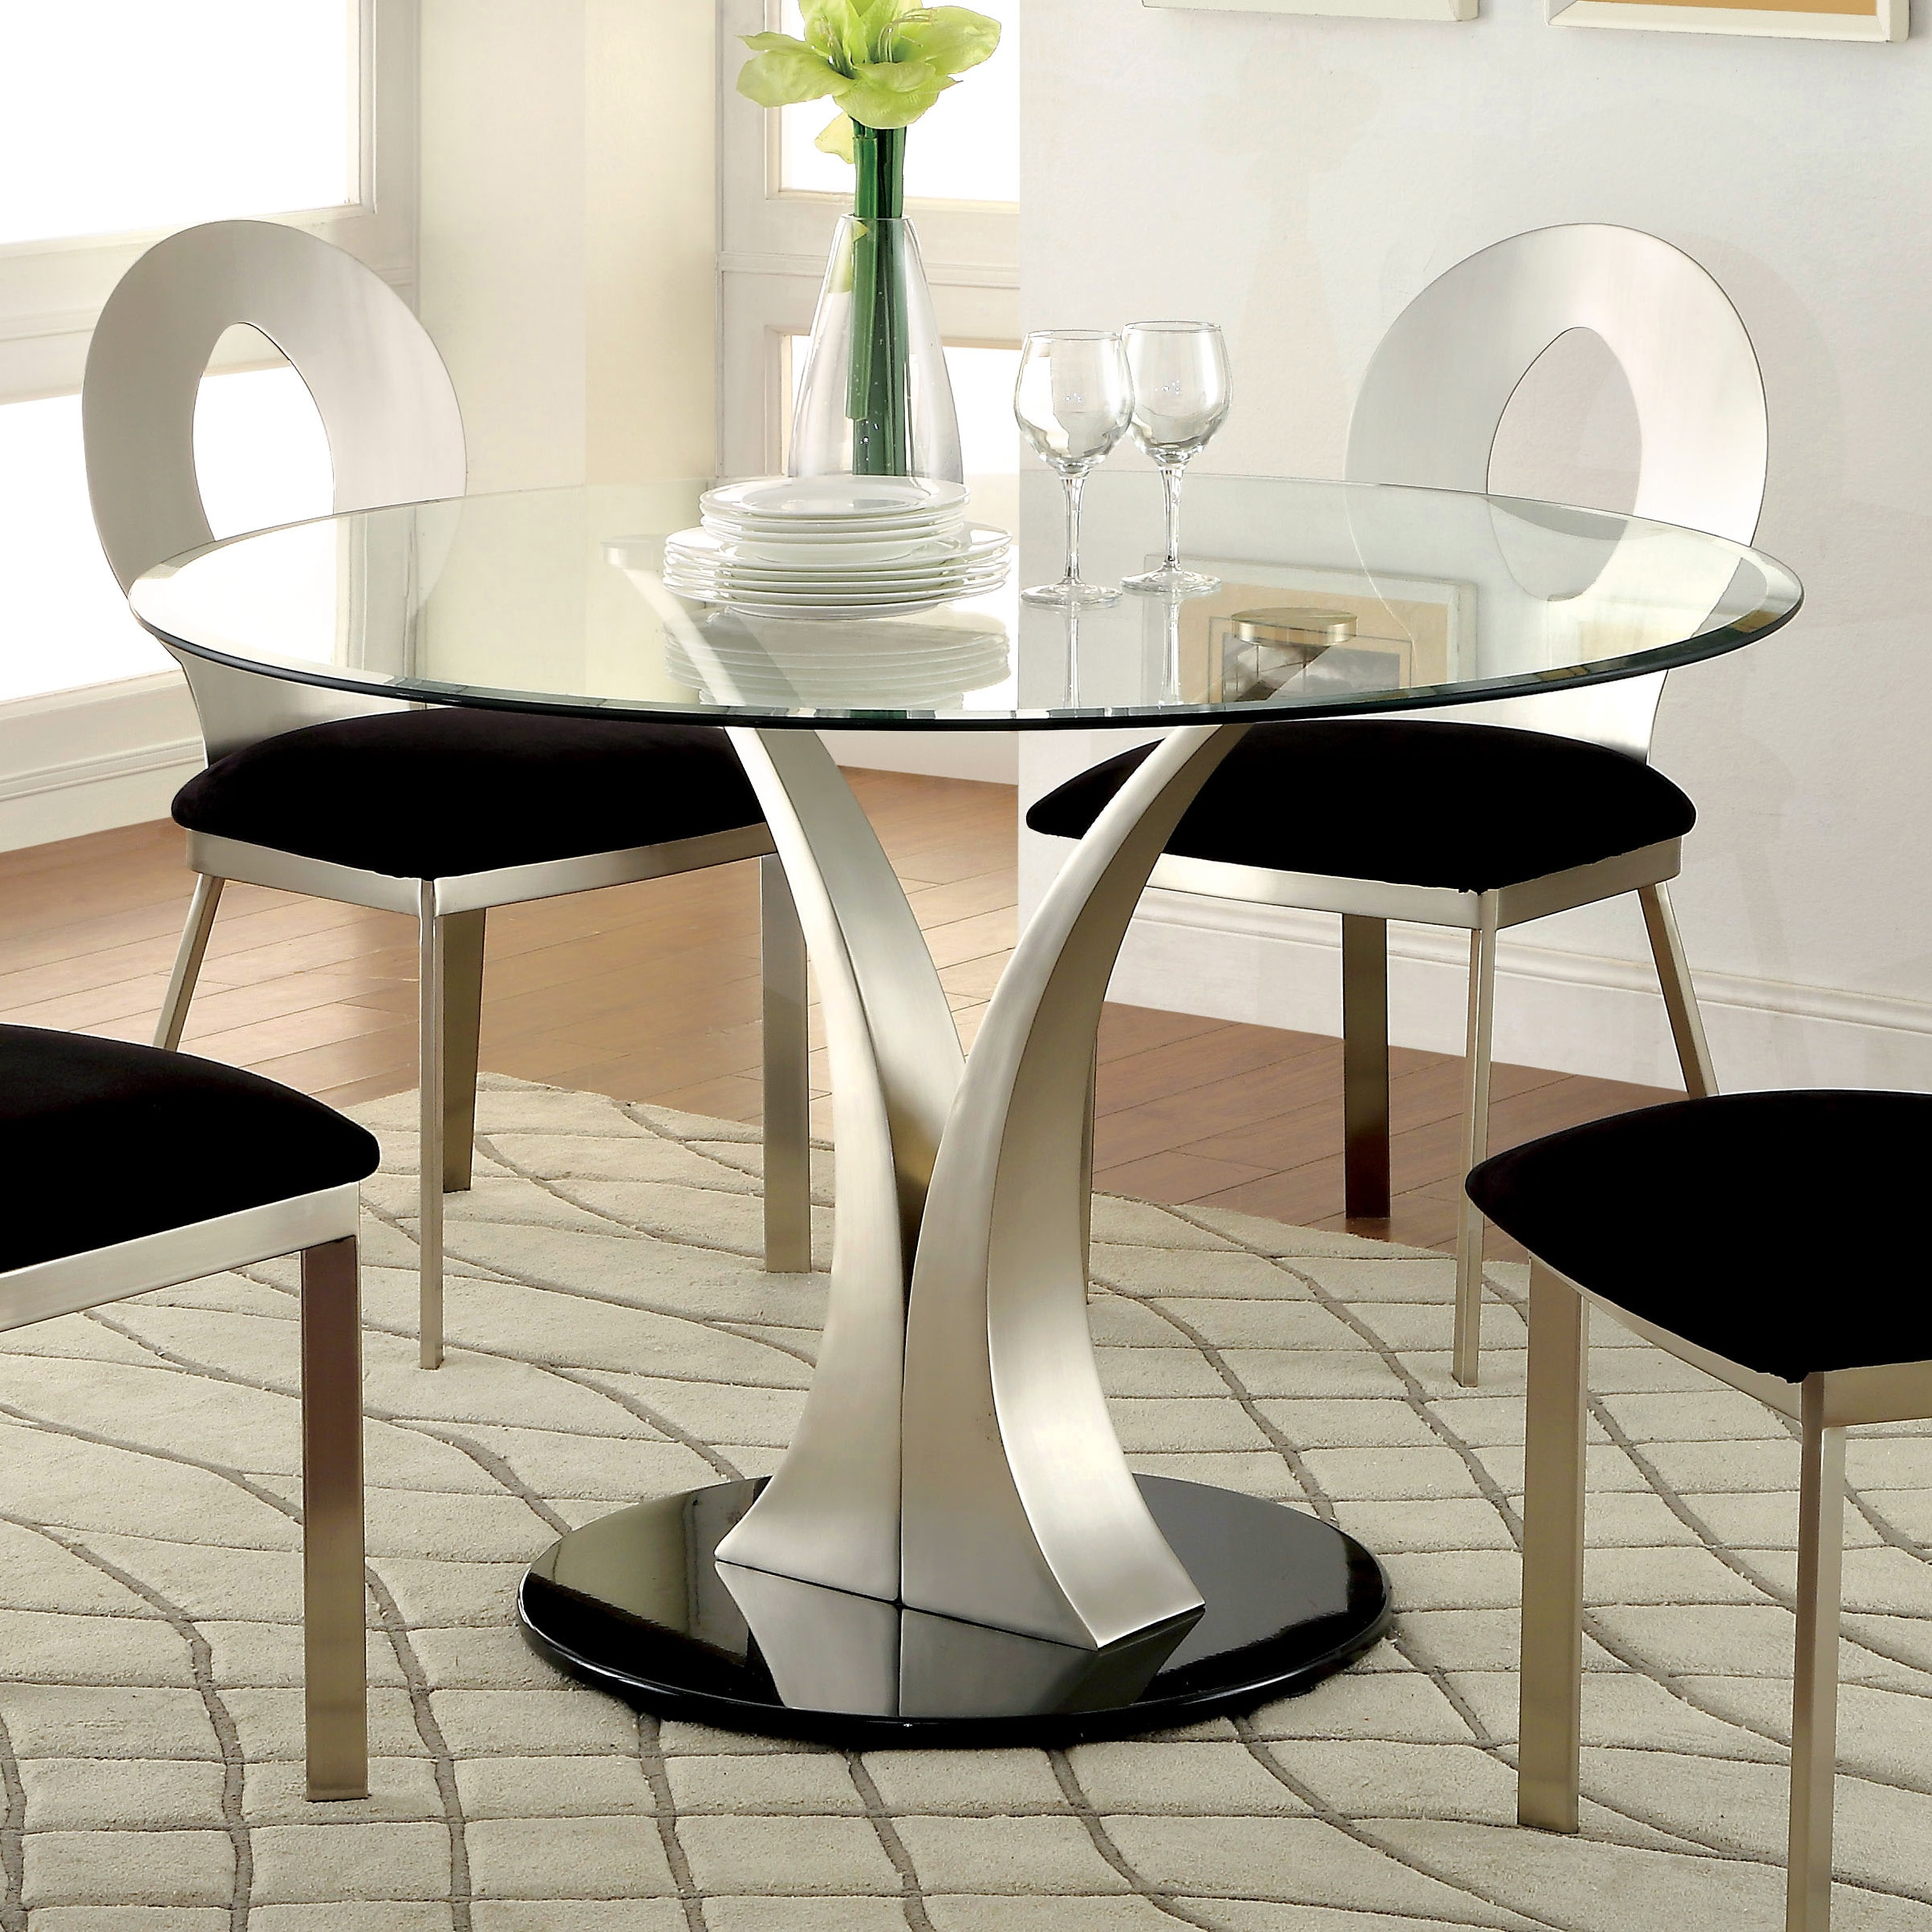 Shop Furniture Of America Sculpture III Contemporary Glass Top Round Dining  Table   Silver   On Sale   Free Shipping Today   Overstock.com   9995253